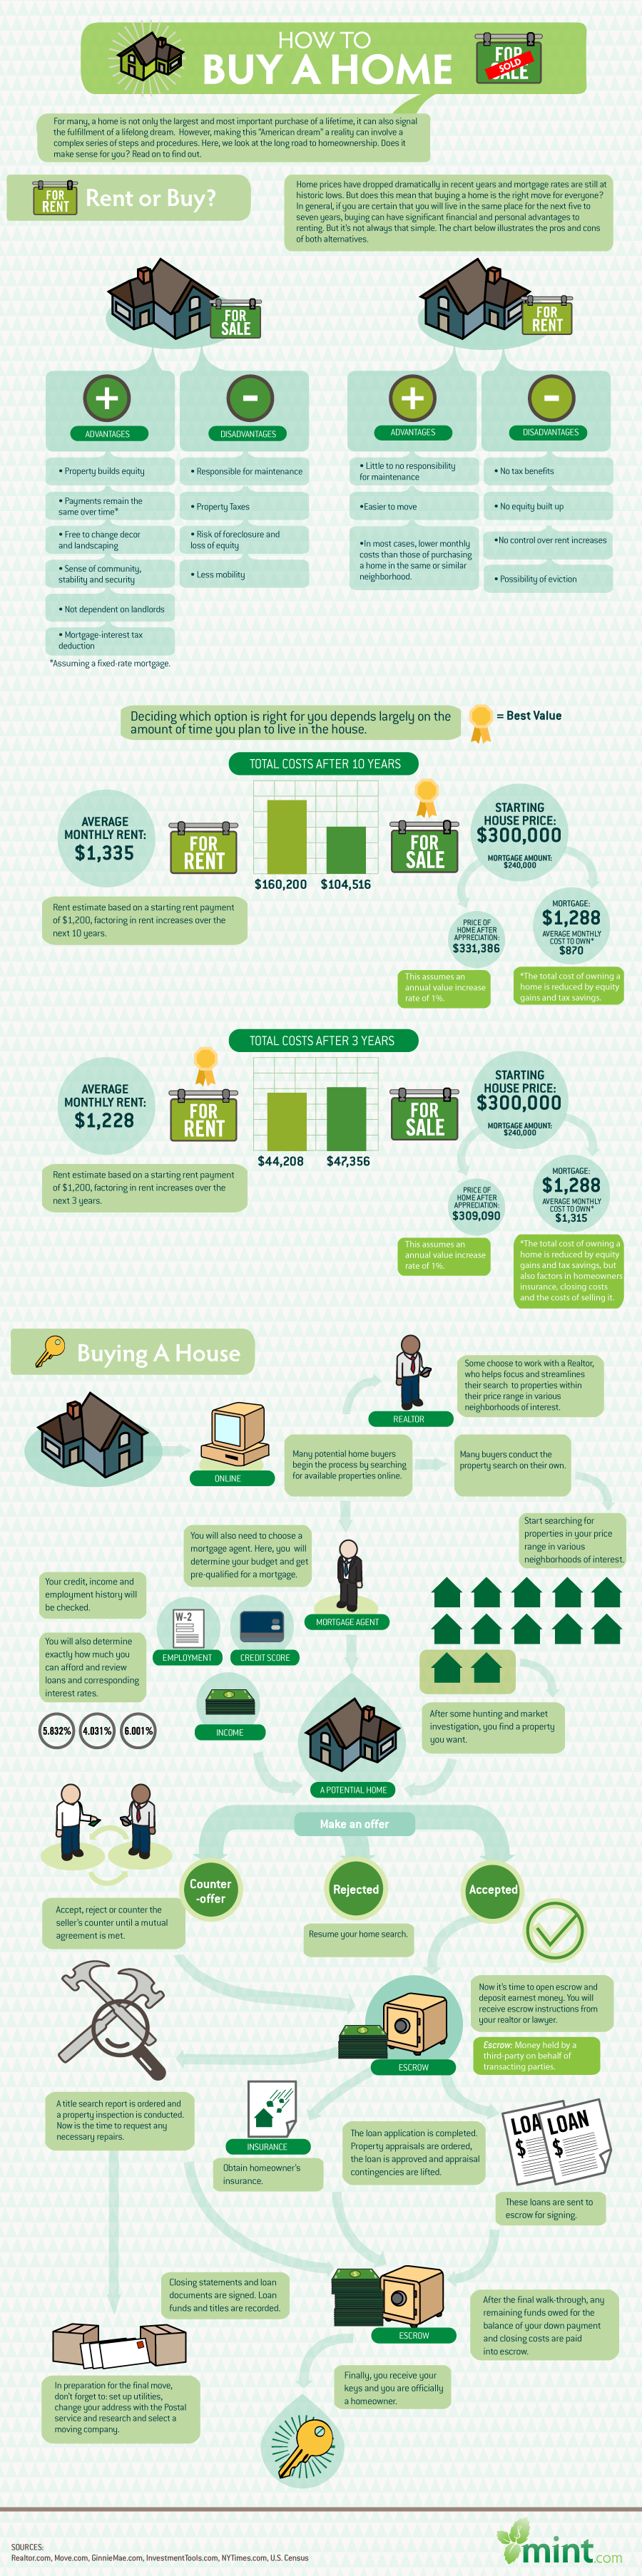 This infographic shows you how to choose whether to rent or buy a home, and then shows you the steps to take in order to buy a house.